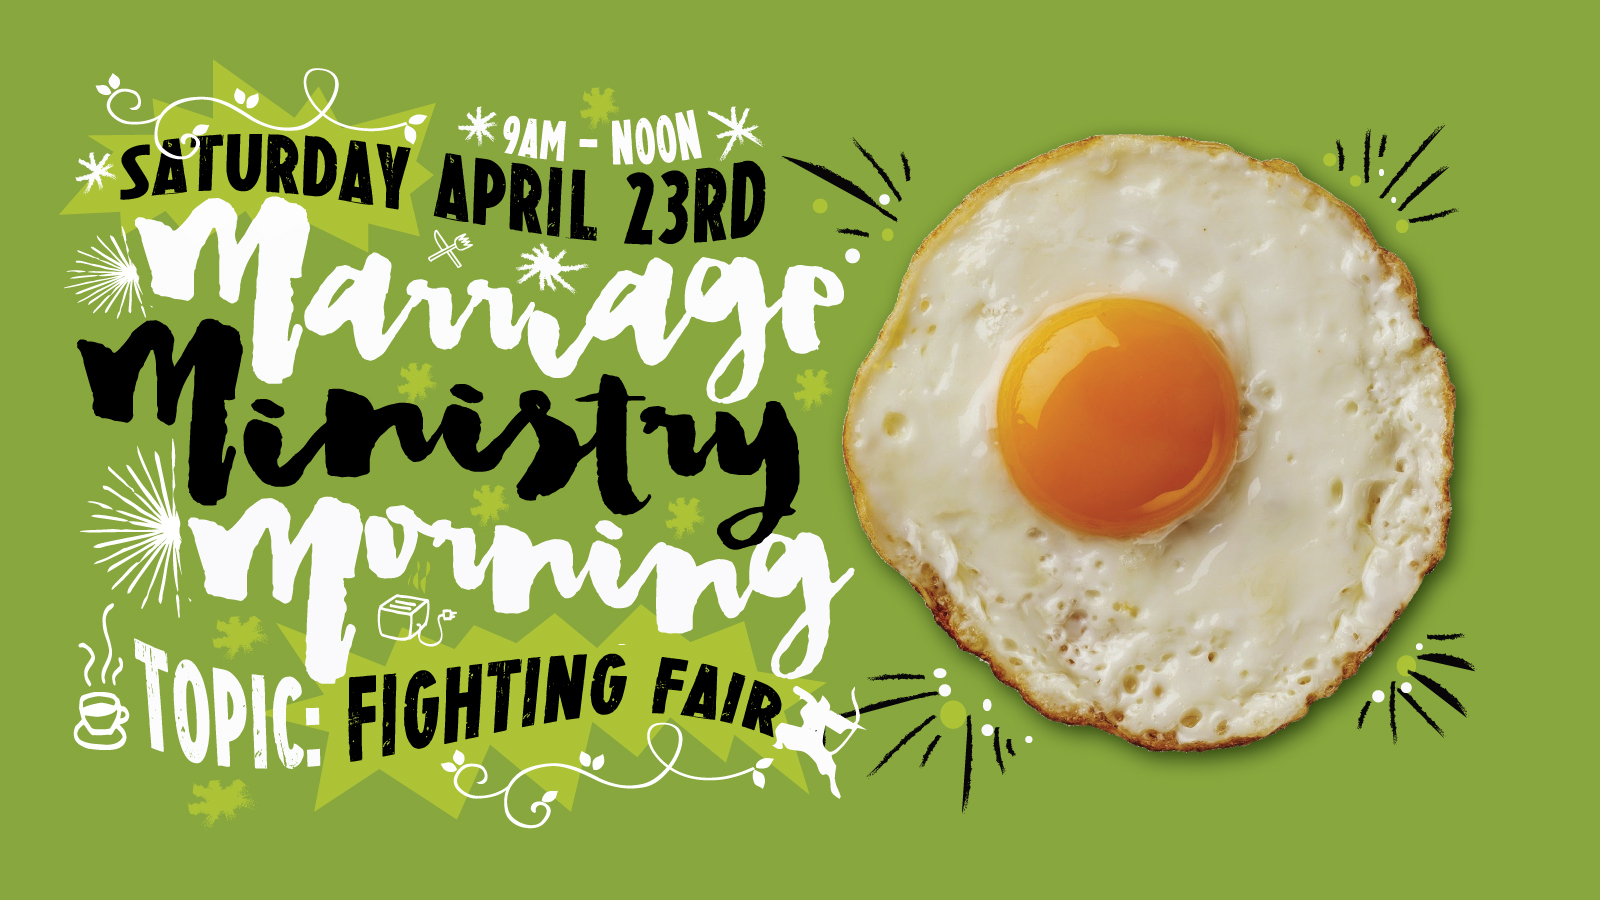 Marriage Ministry Morning: Fighting Fair